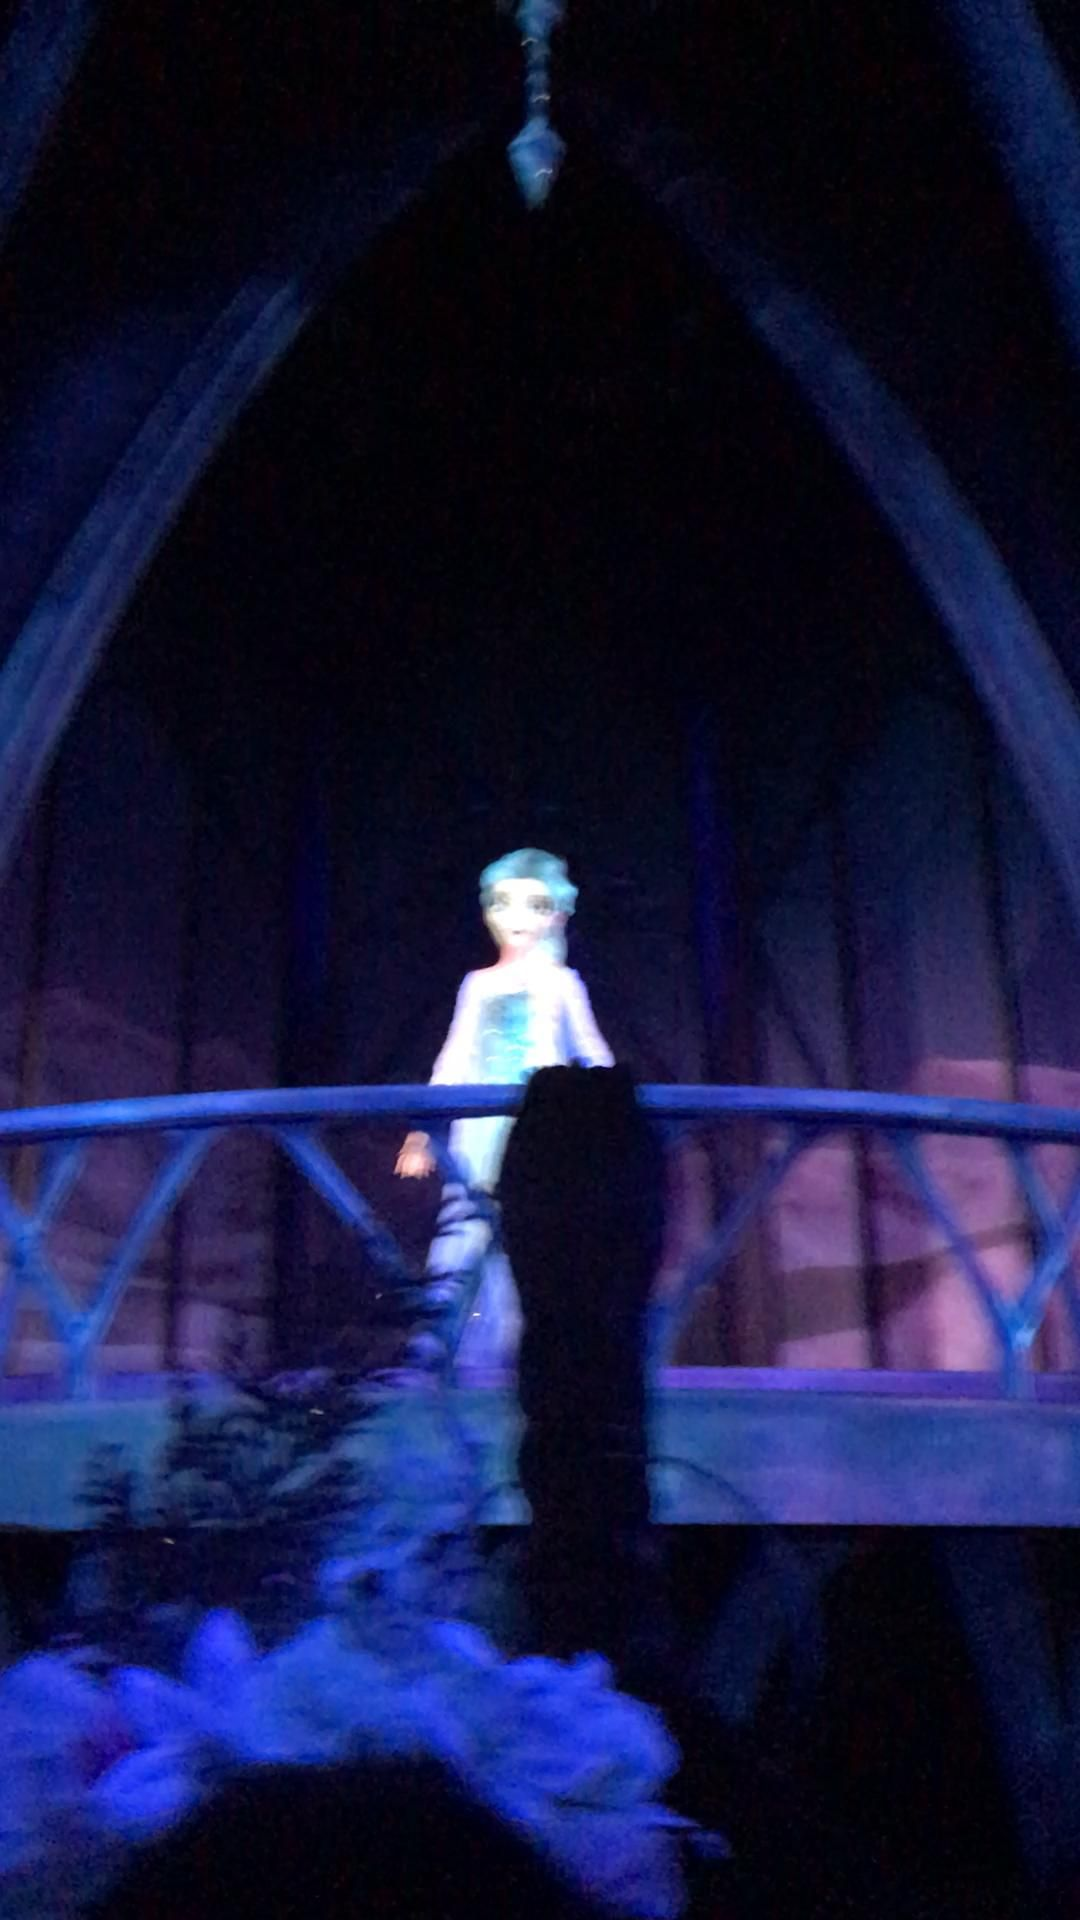 Frozen Ever After - A Family Friendly Ride